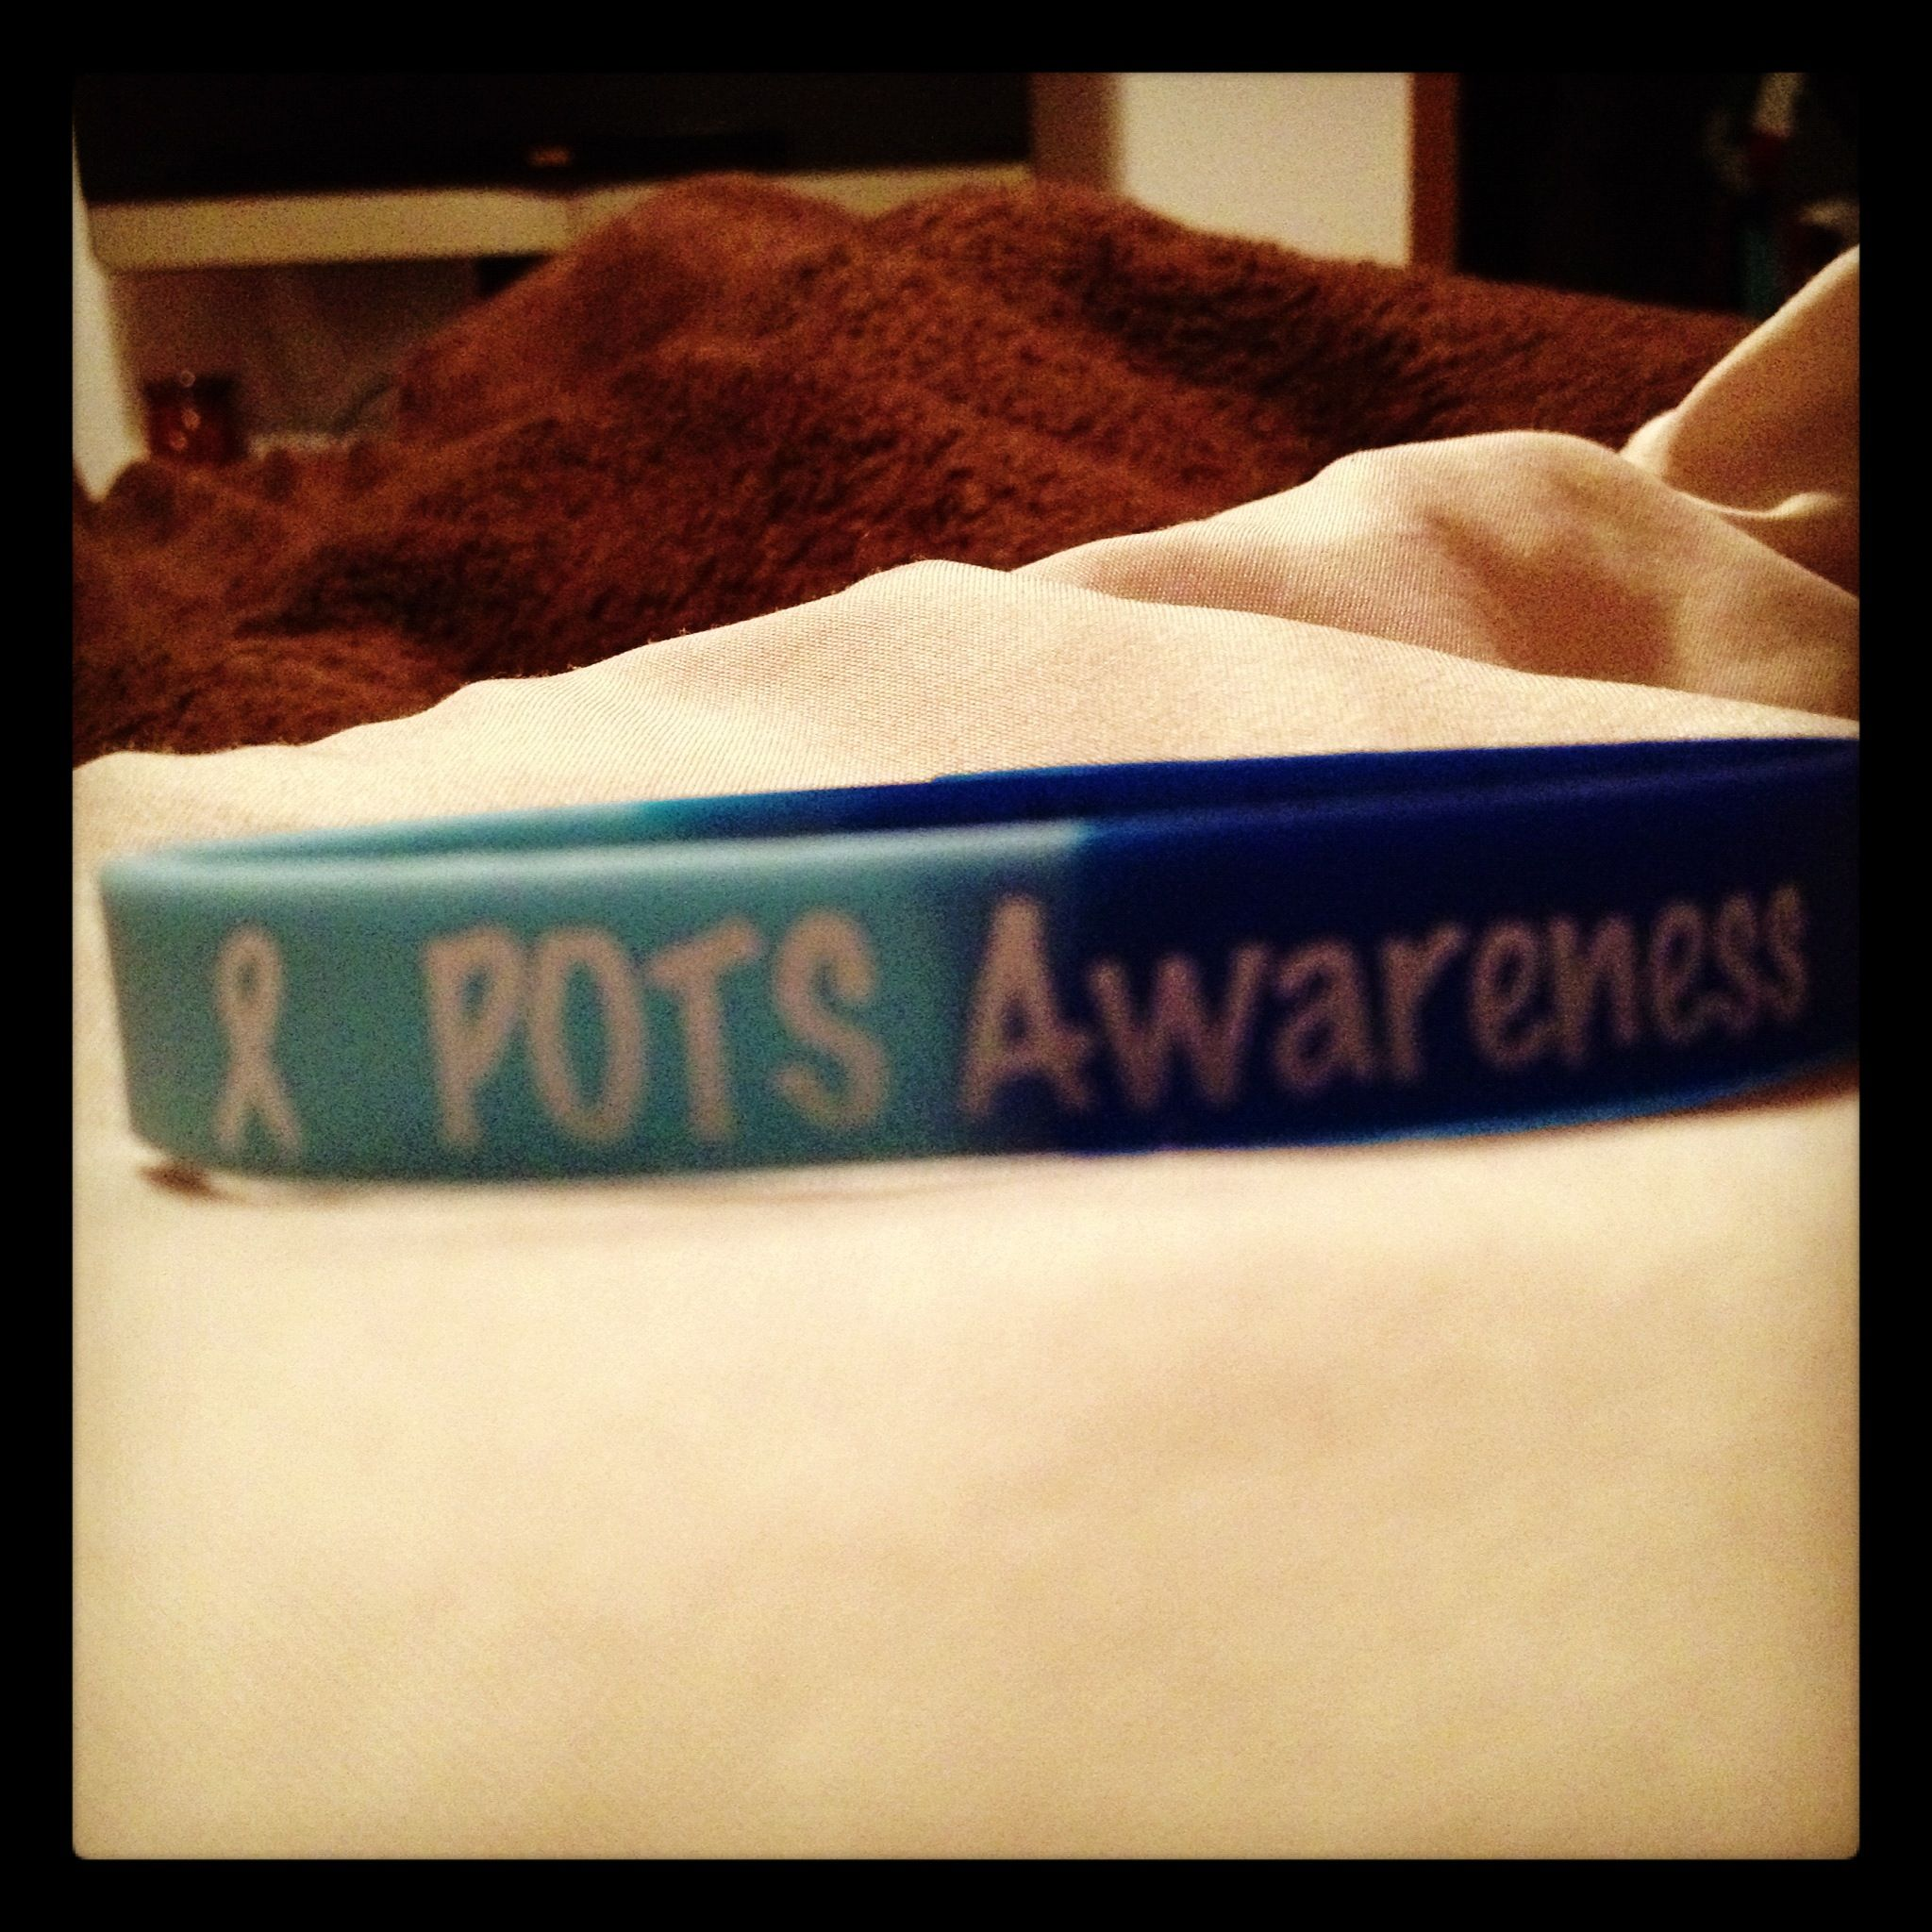 month bracelet dysautonomia mean what so re you does youre potsy scones making awareness that